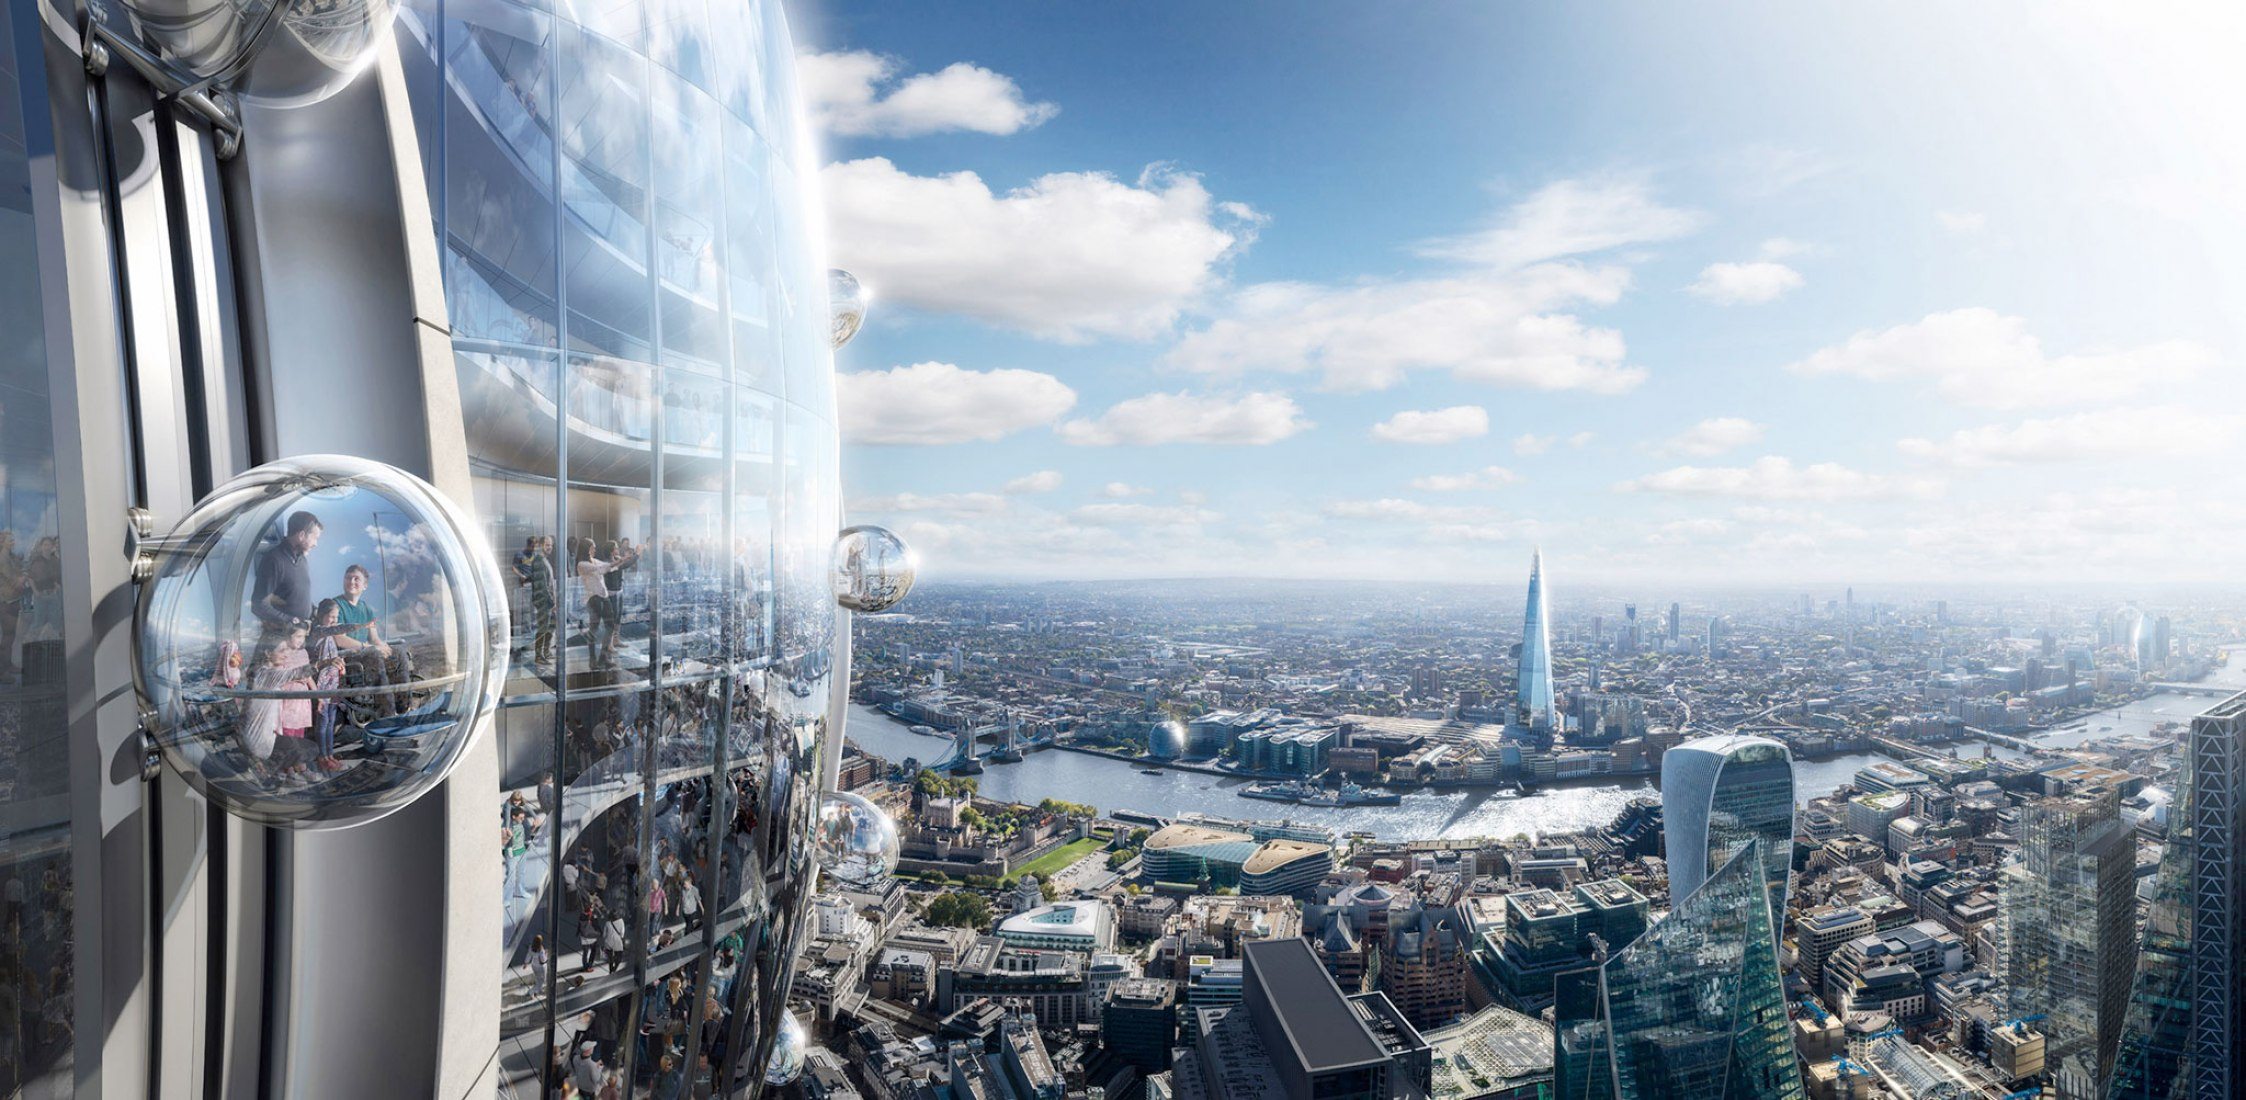 People can view the city from glass gondolas that revolve around the outside of The Tulip's